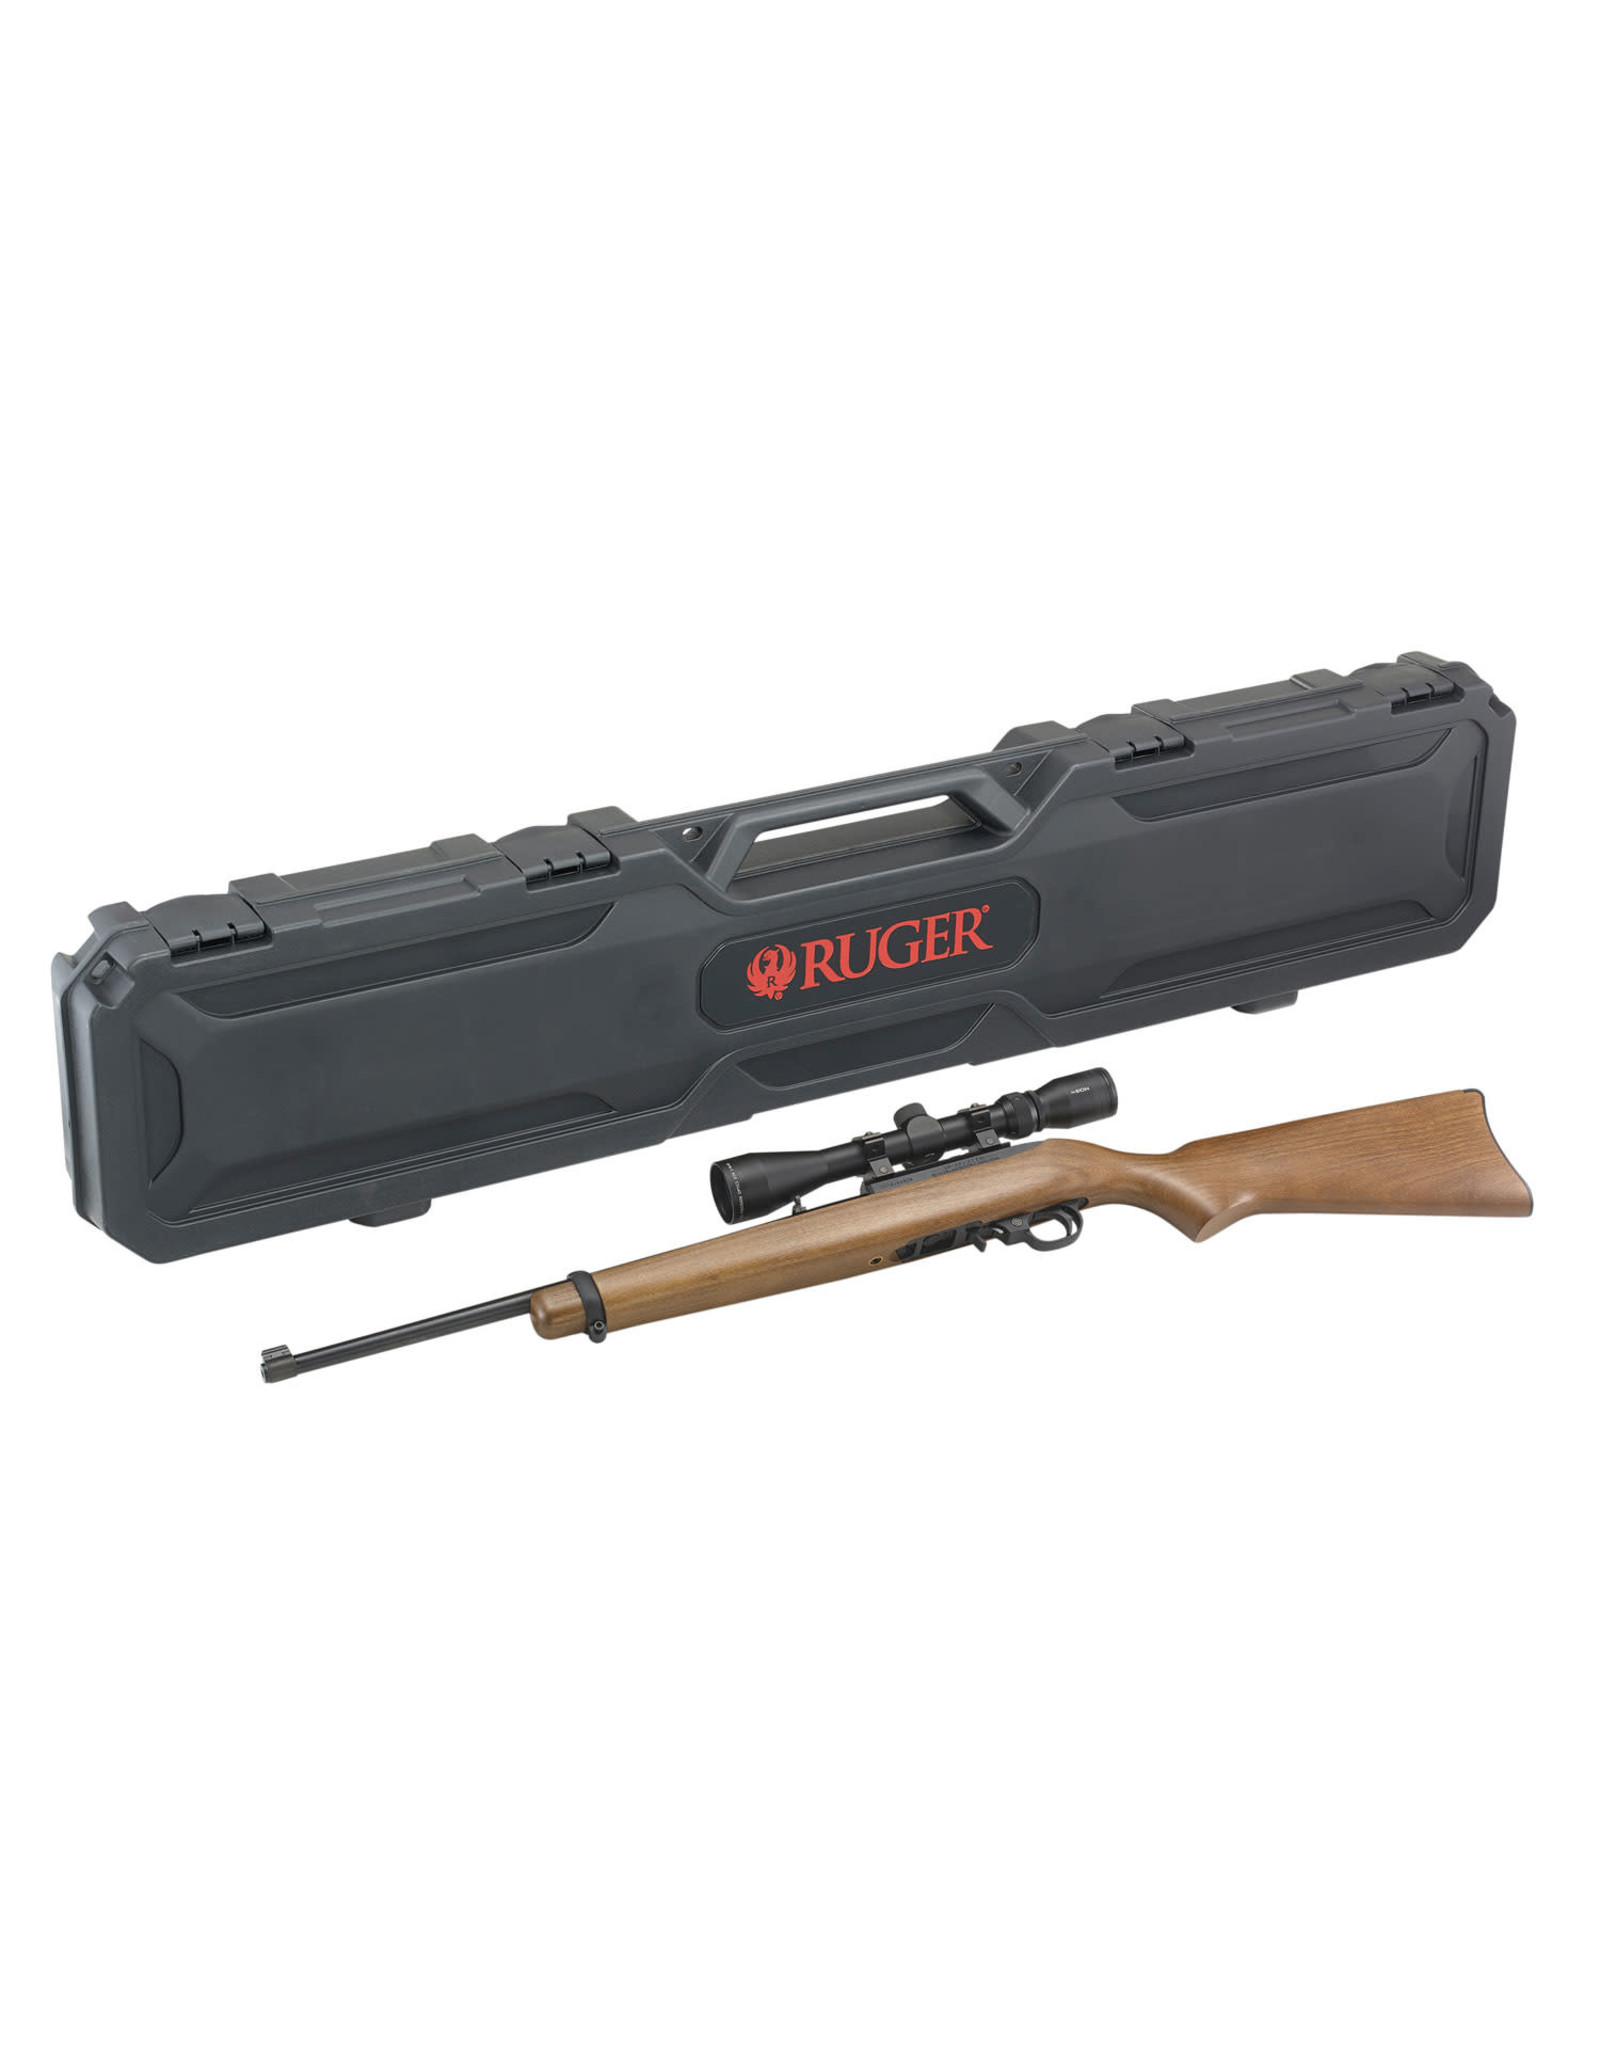 "Ruger 10/22 Carbine 22 LR 10+1 18.50"" w/ Viridian EON 3-9x40mm & Hard Case"